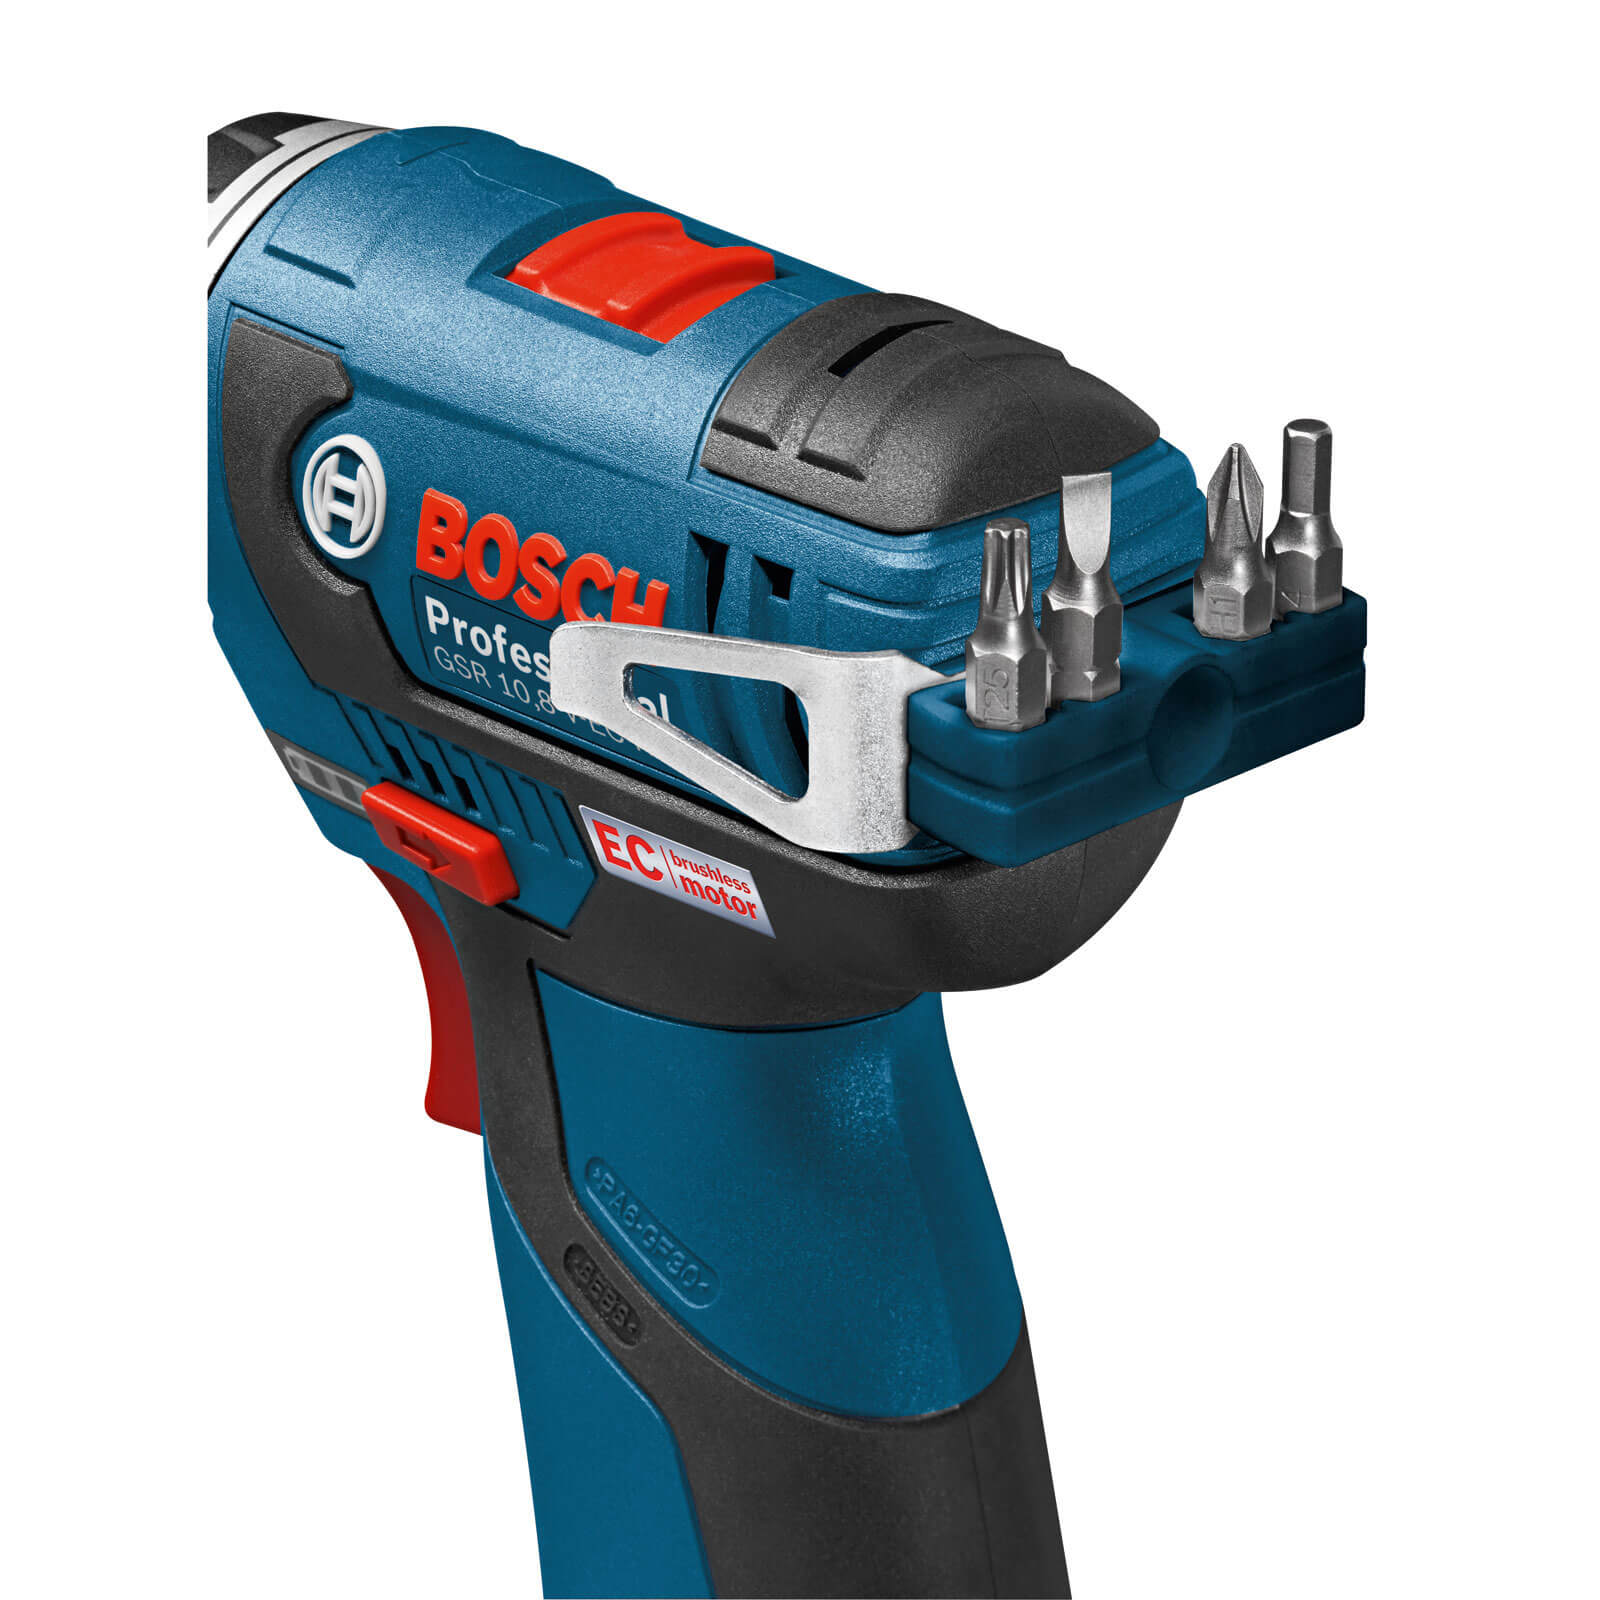 bosch gsr 10 8 v ec hx cordless 2 speed brushless. Black Bedroom Furniture Sets. Home Design Ideas